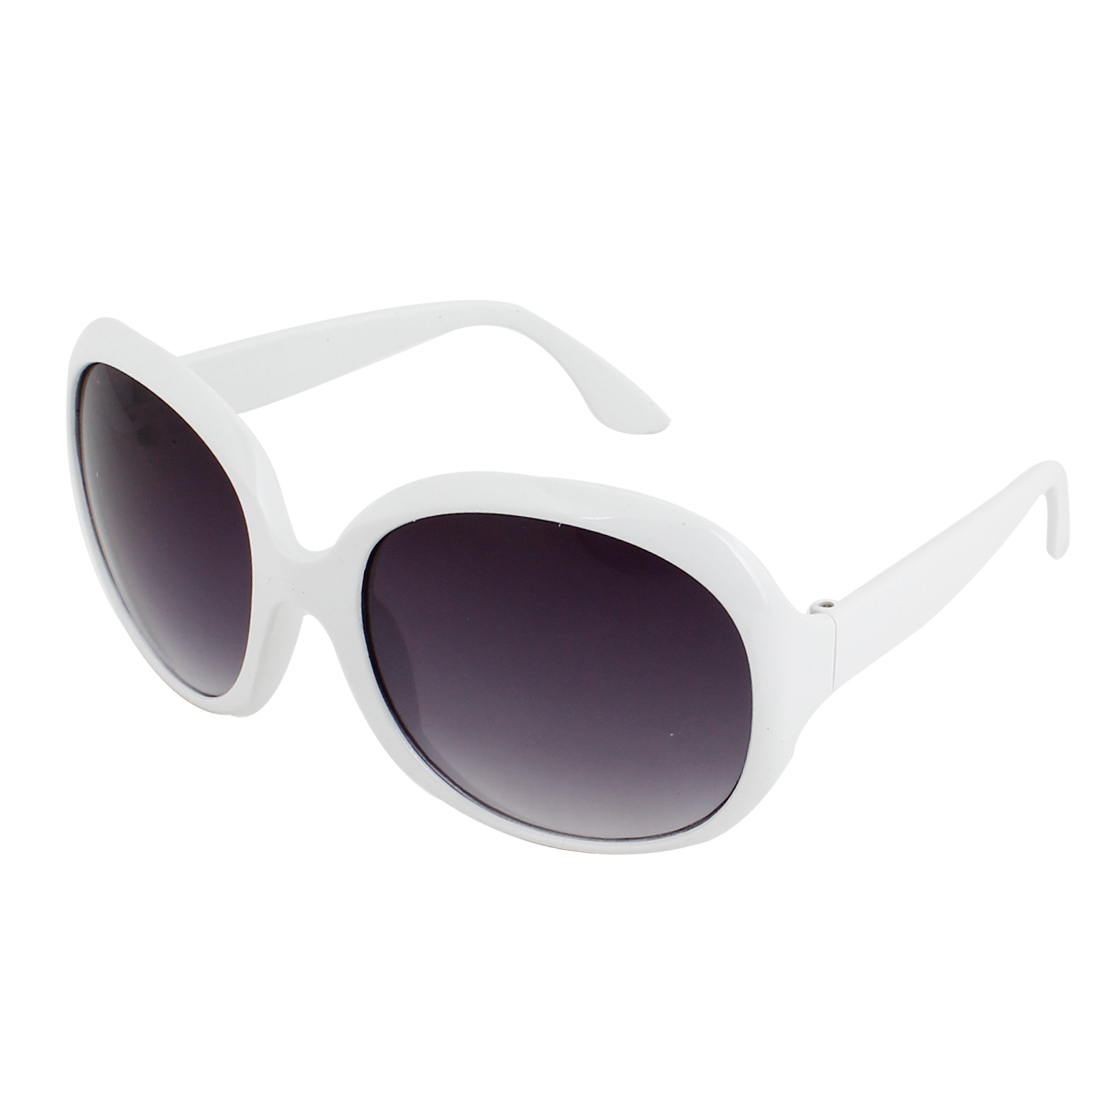 White Plastic Width Temple Full Rim Leisure Protective Sunglasses for Men Women